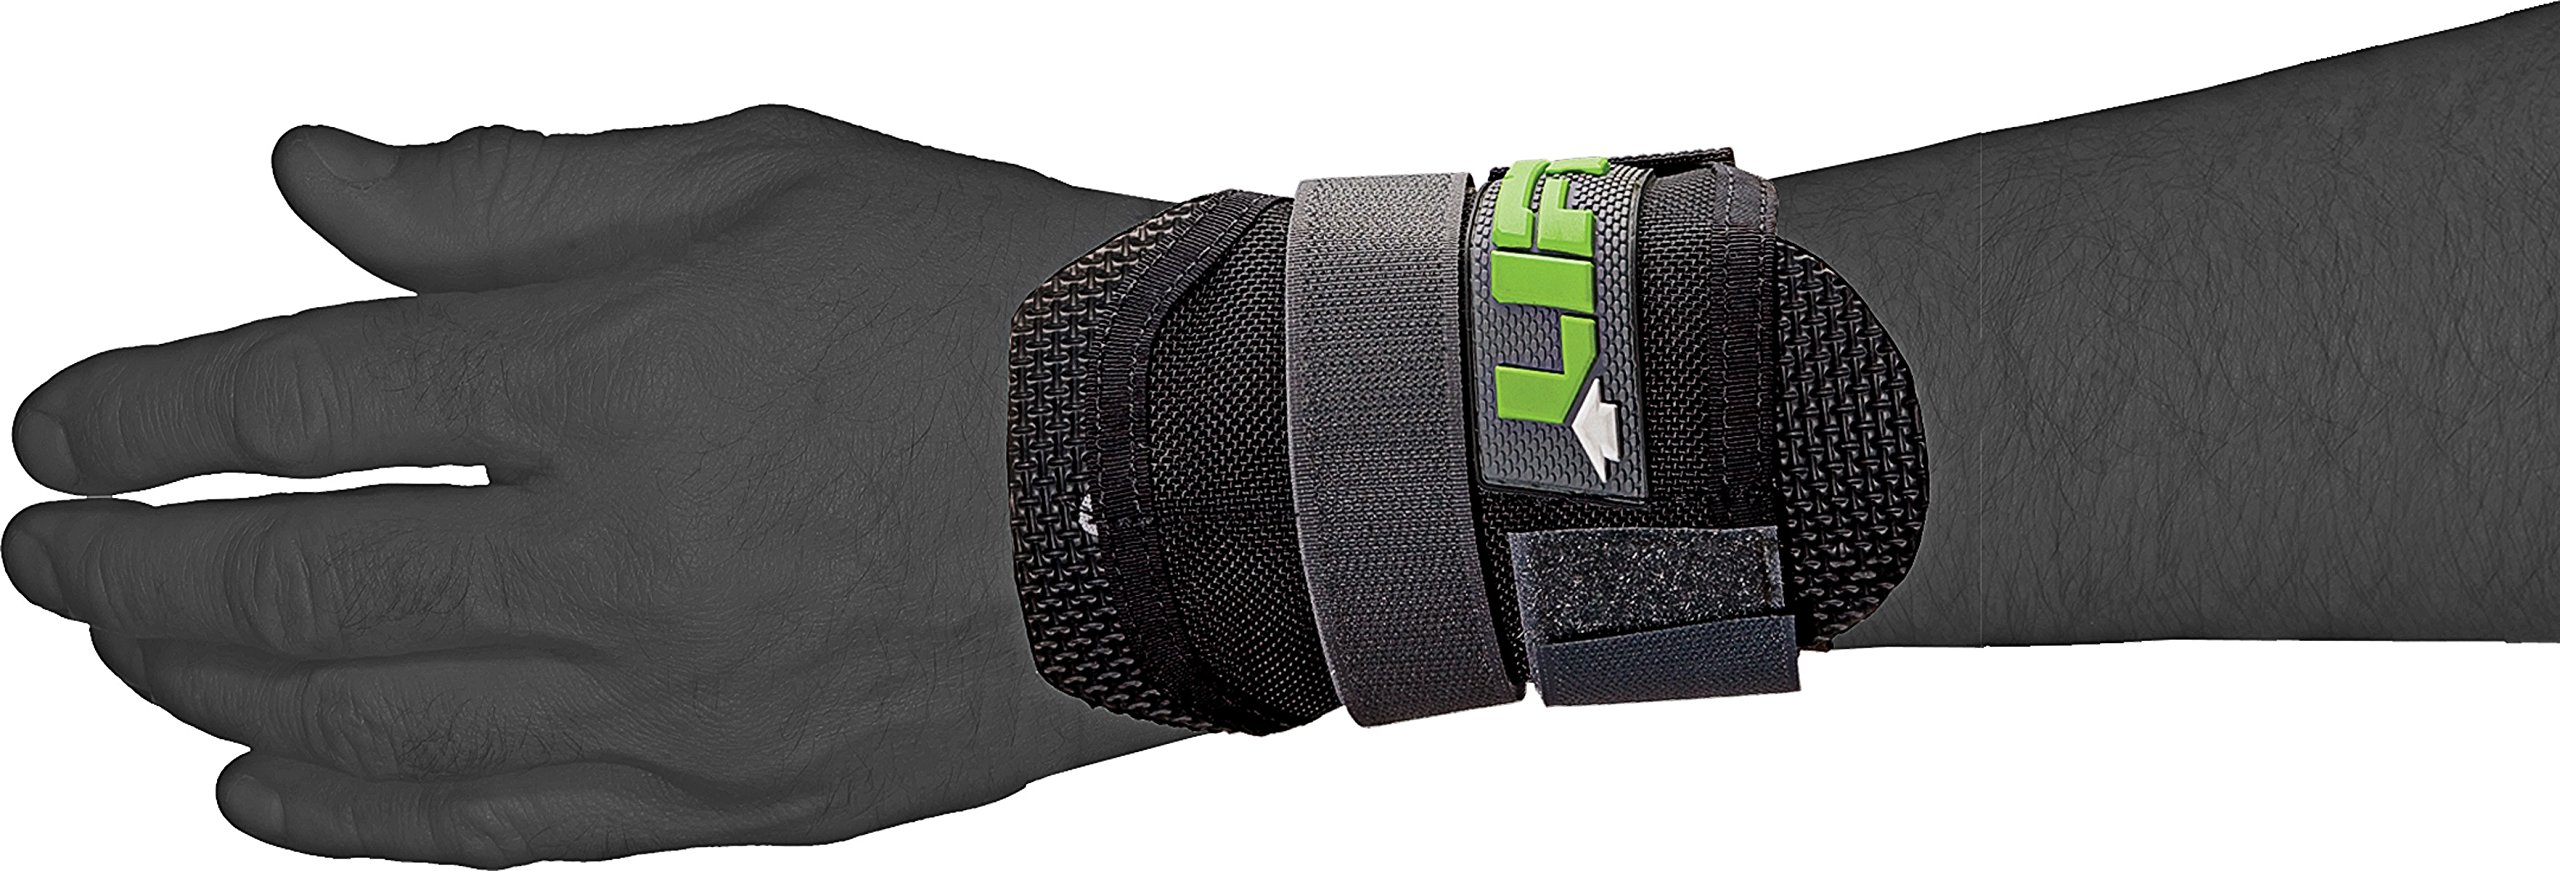 LIFT Safety Bracer Wrist Support (Black, One Size)